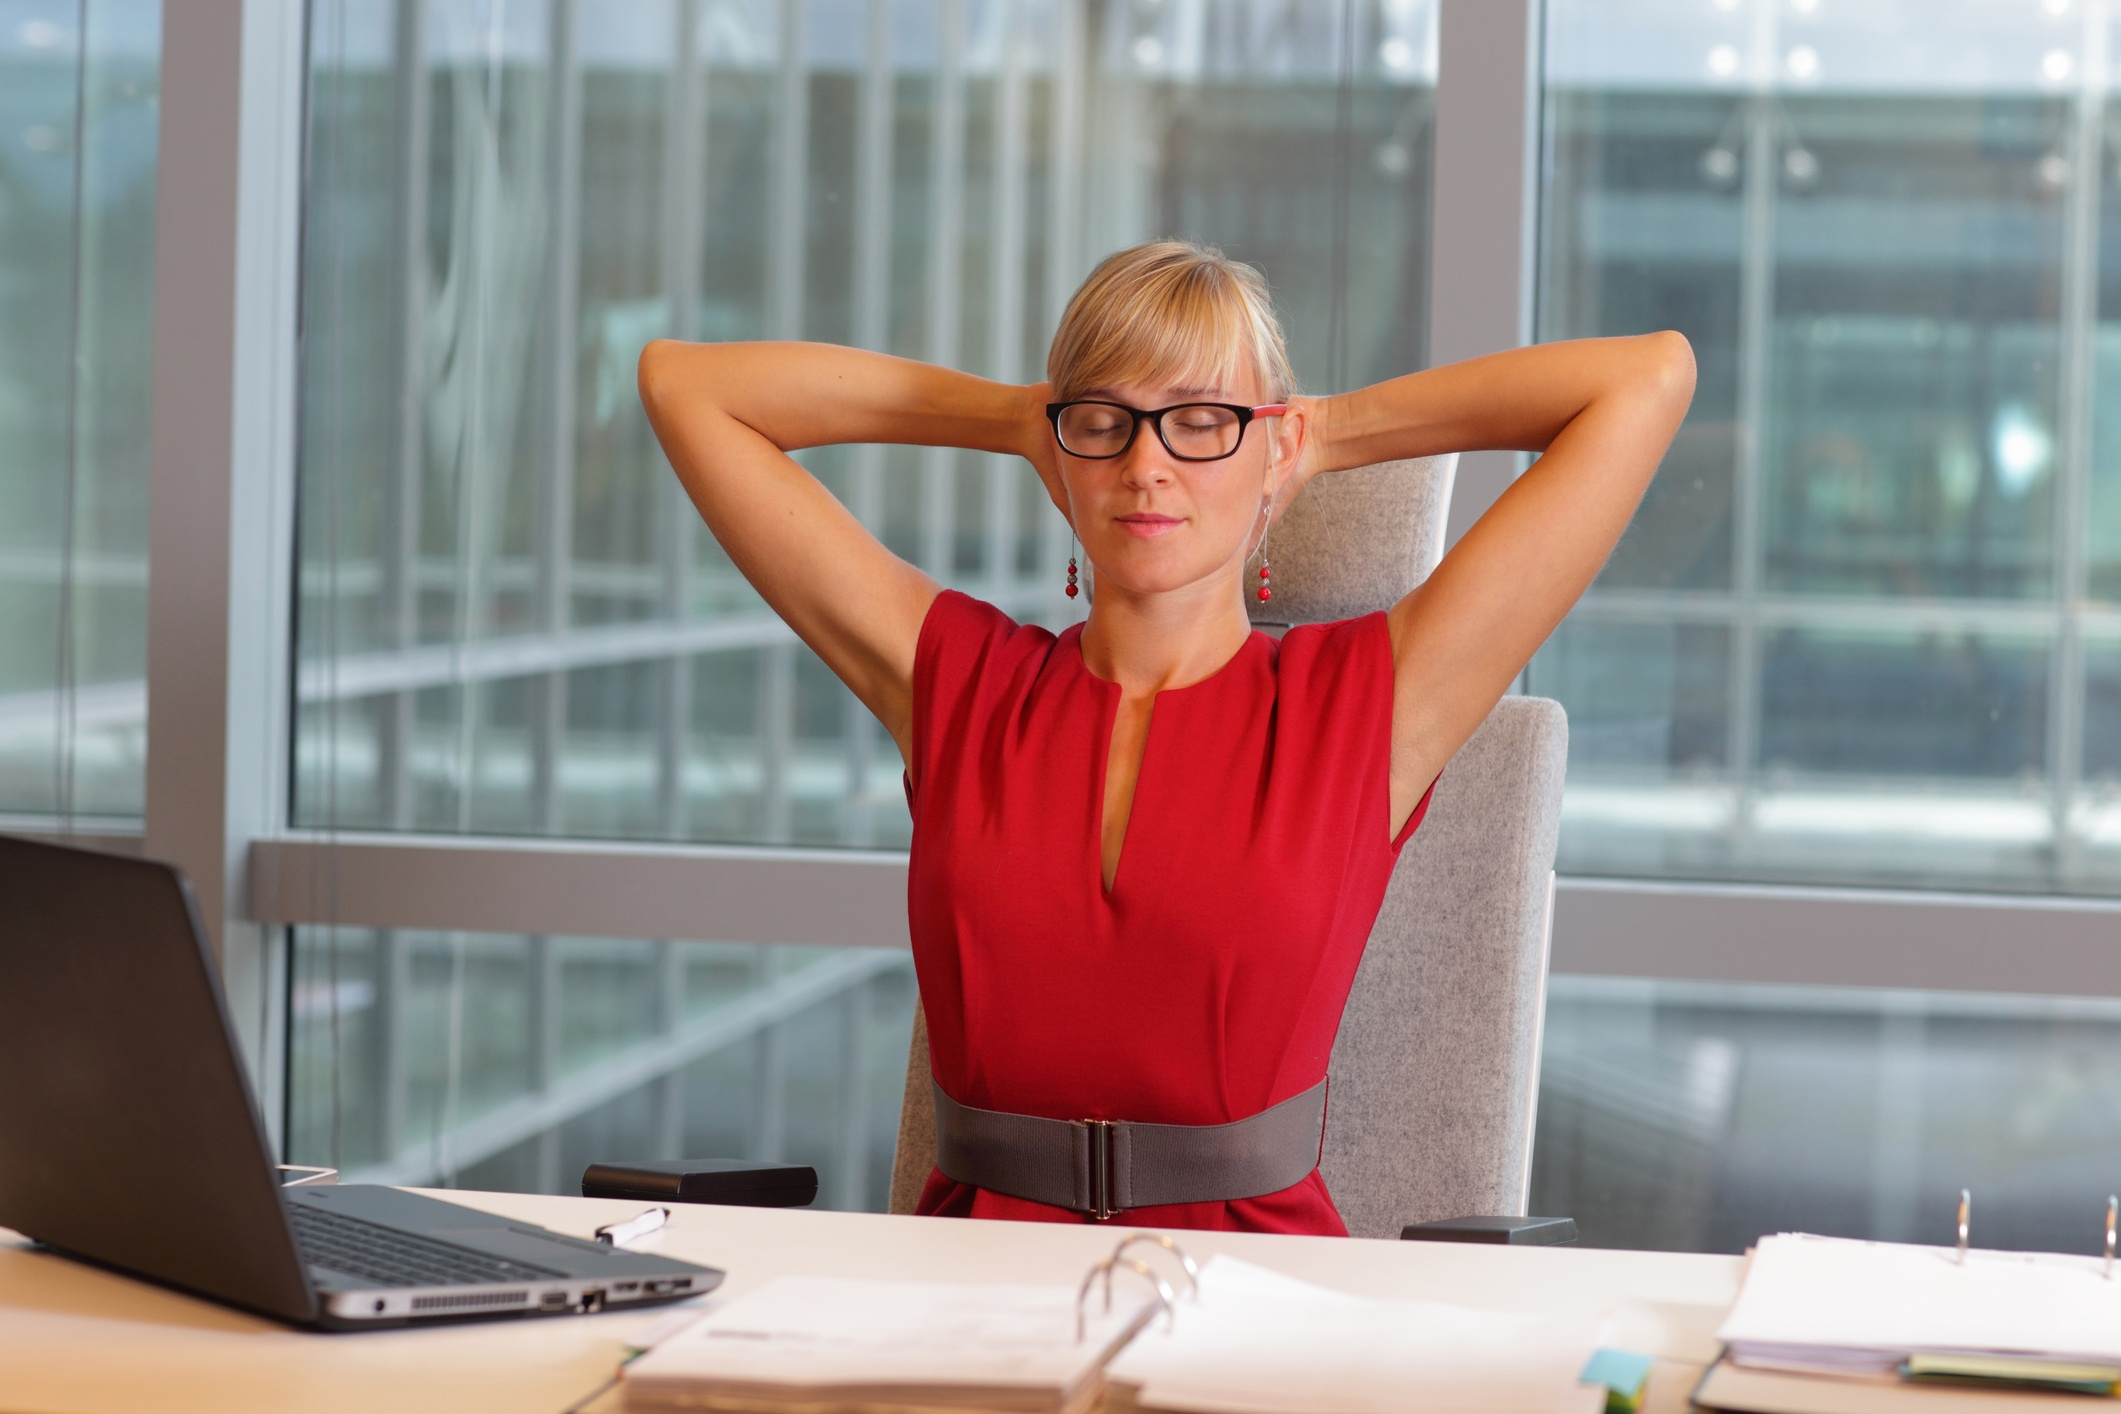 caucasian-business-woman-in-eyeglasses-relaxing-neck,stretching-arms-488156170_2125x1416.jpeg